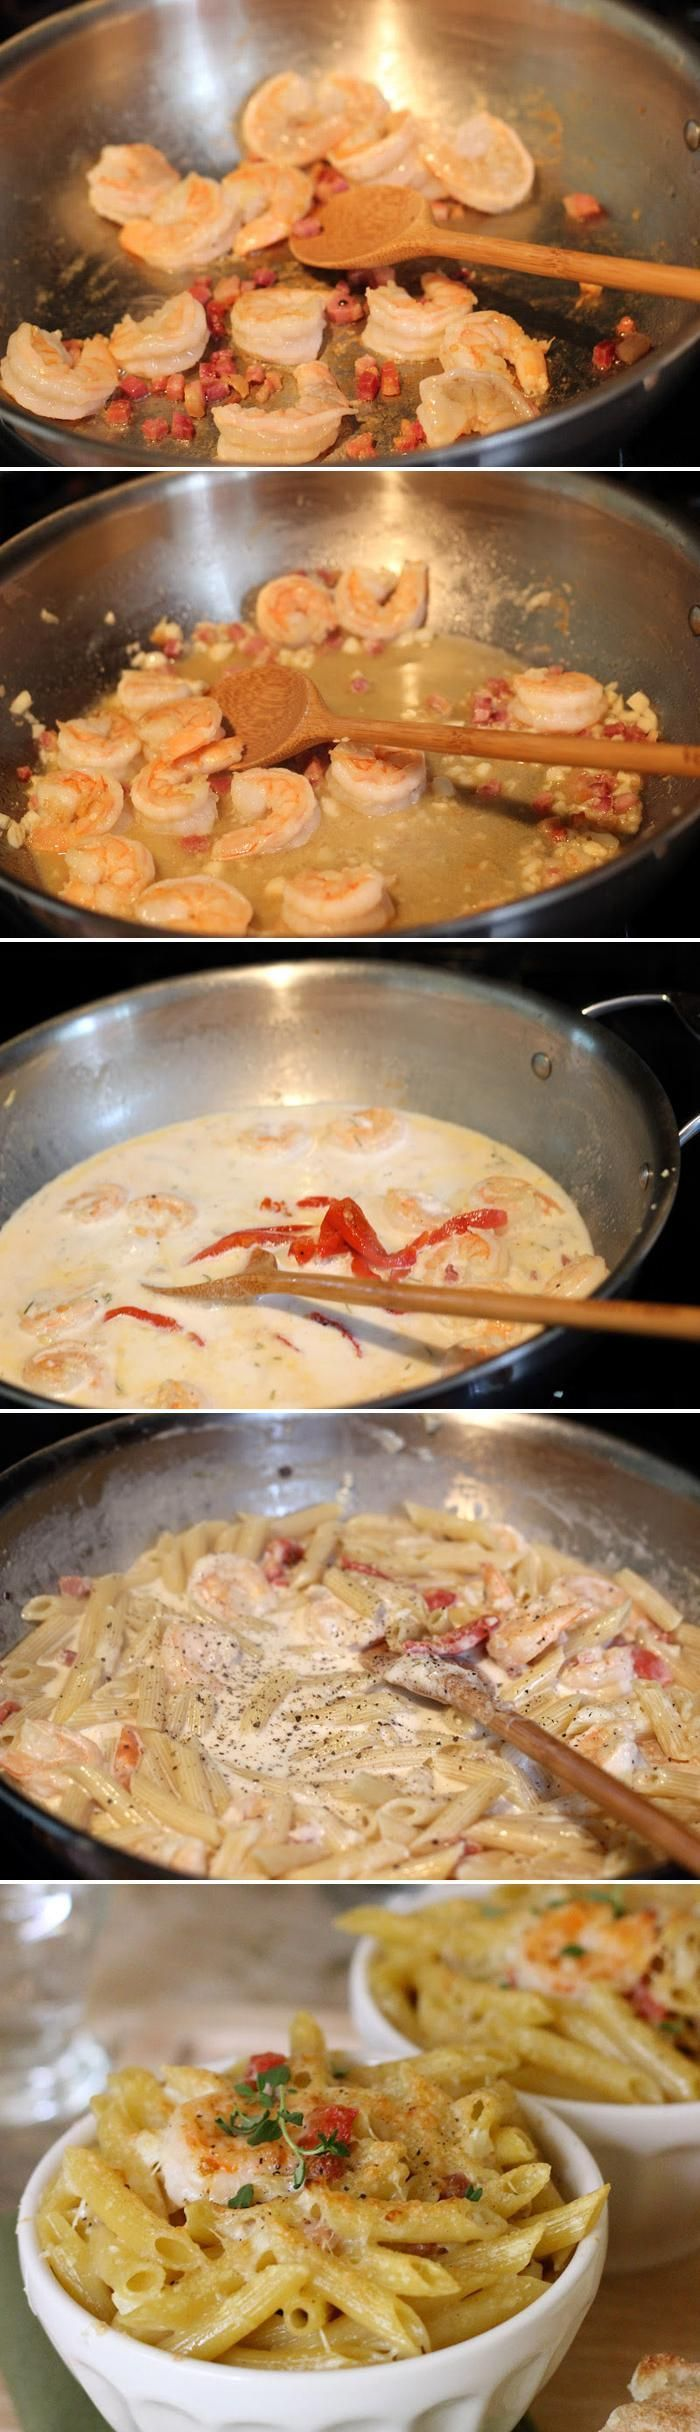 Rustic penne shrimp pasta in a parmesan cream sauce quick What to make with shrimp for dinner